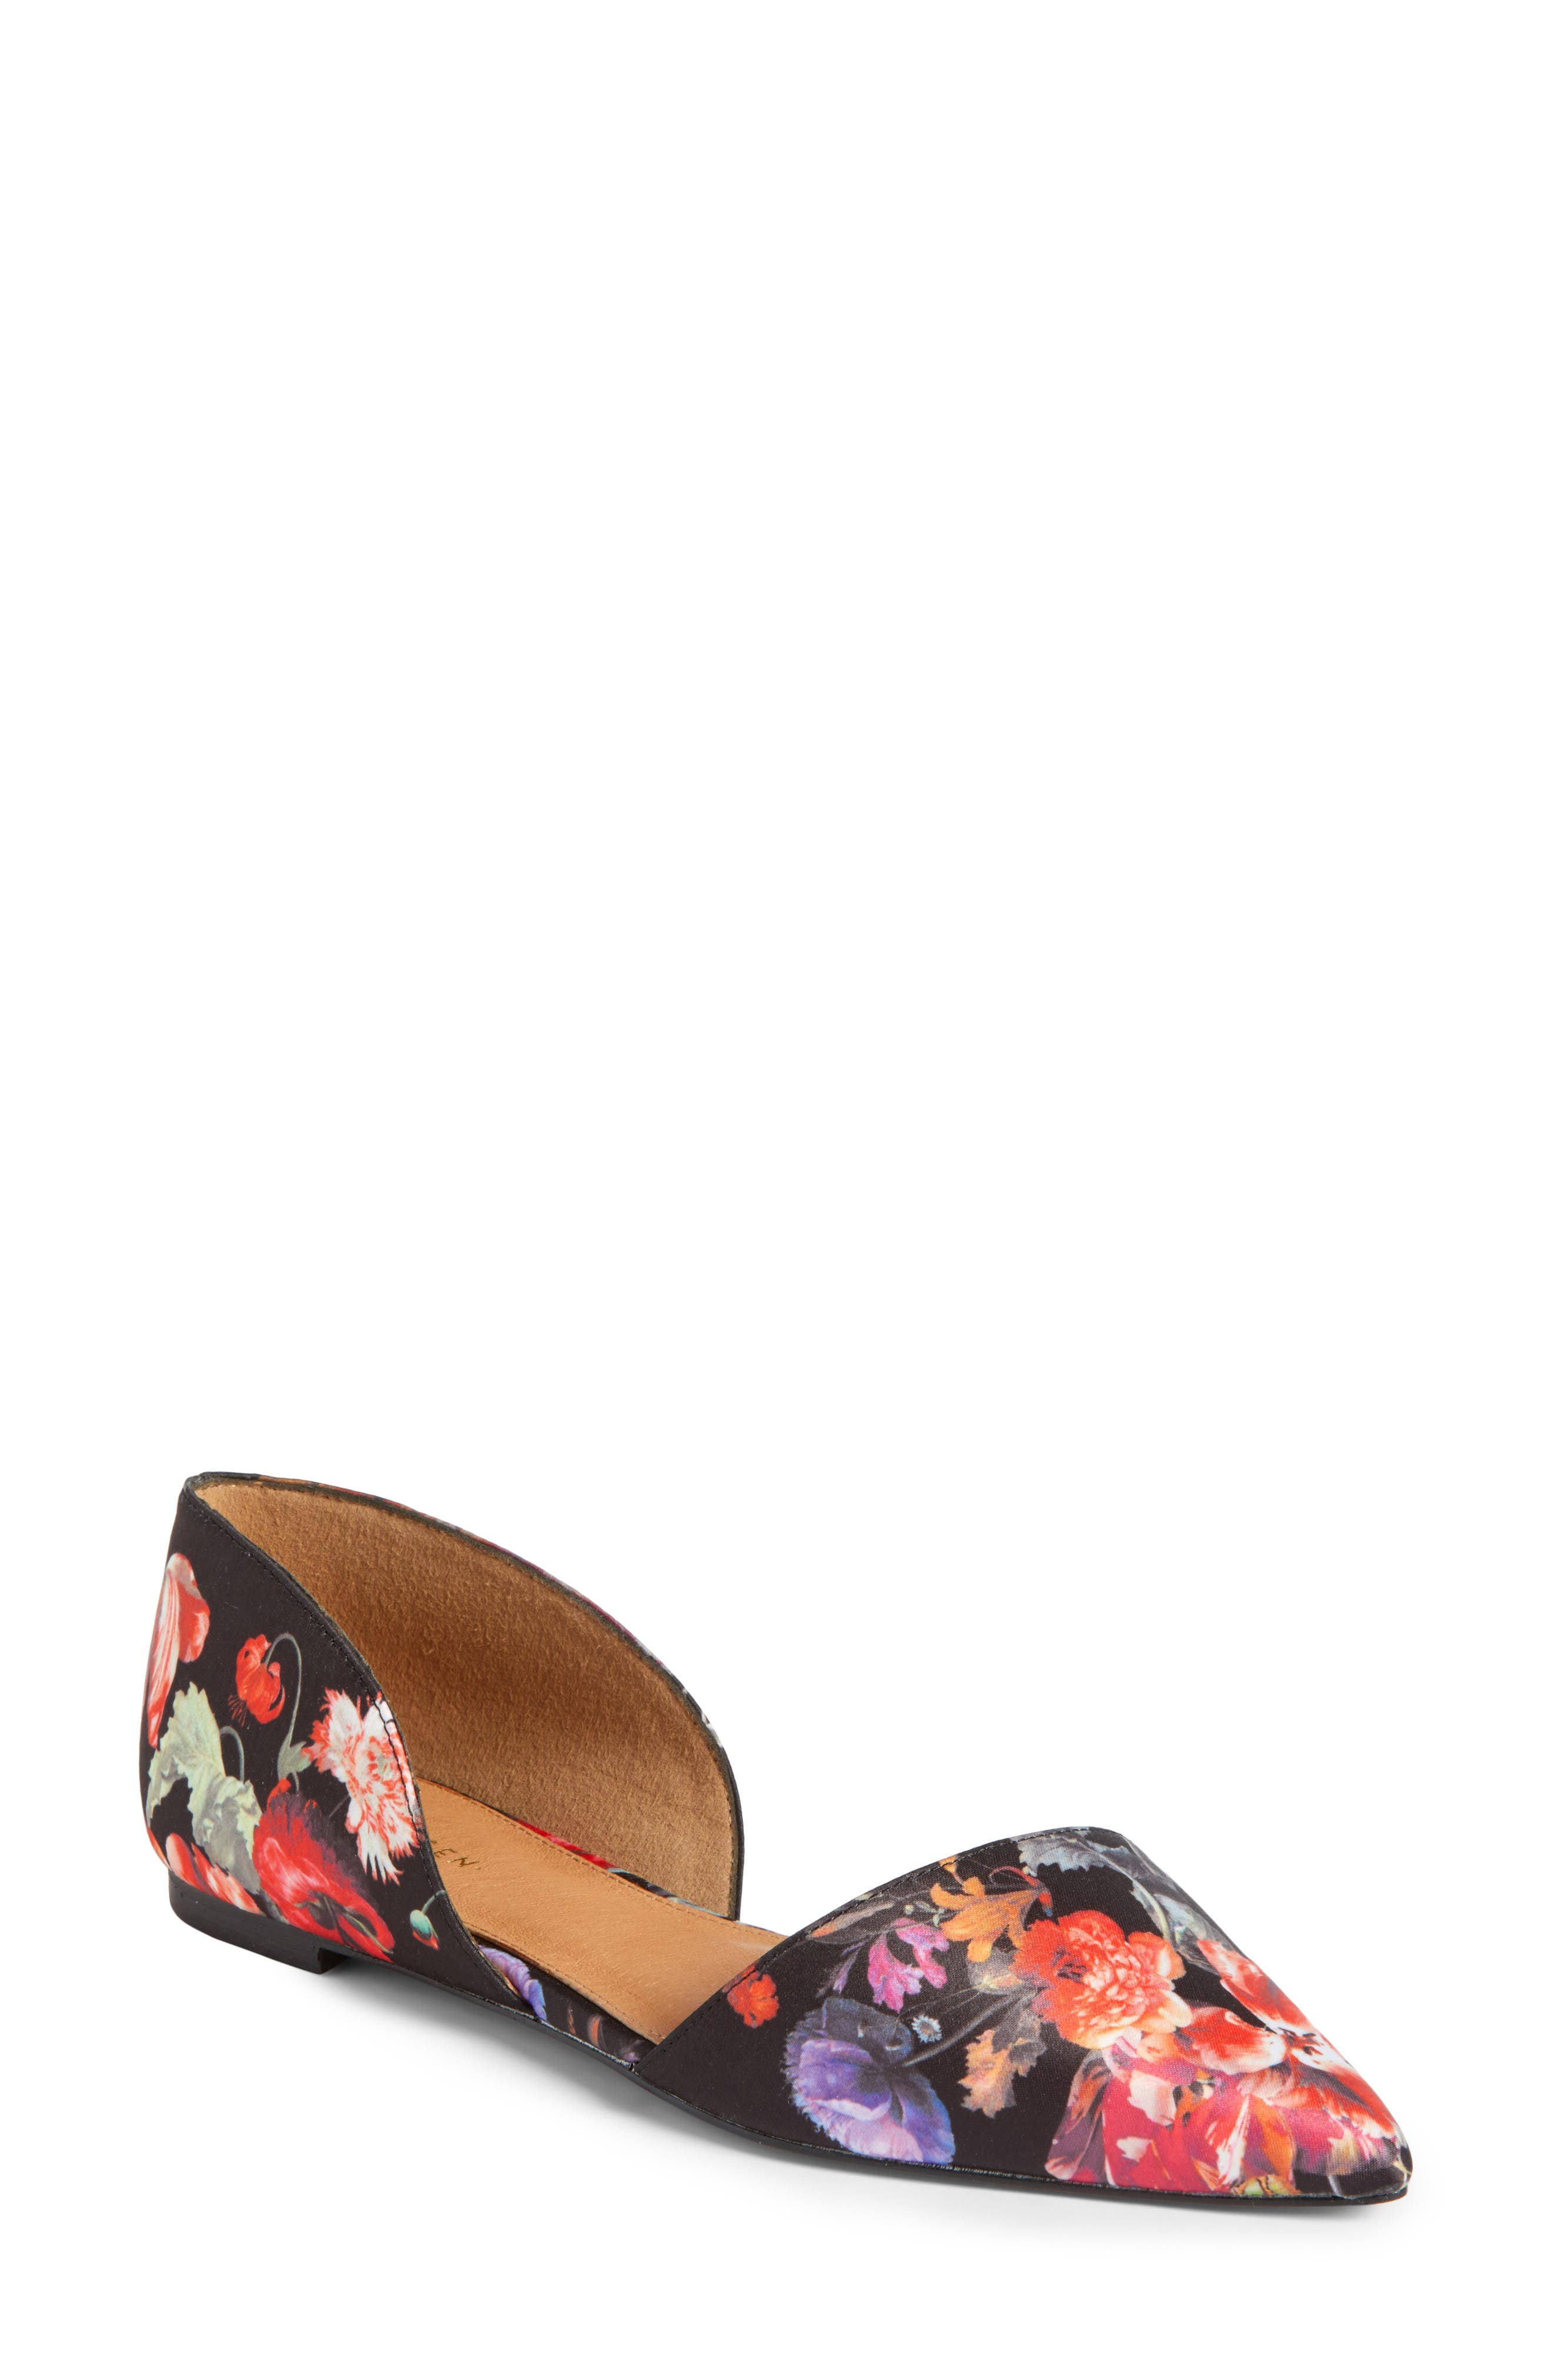 Maisy d'Orsay Flat,                         Main,                         color, Black/ Red Floral Fabric